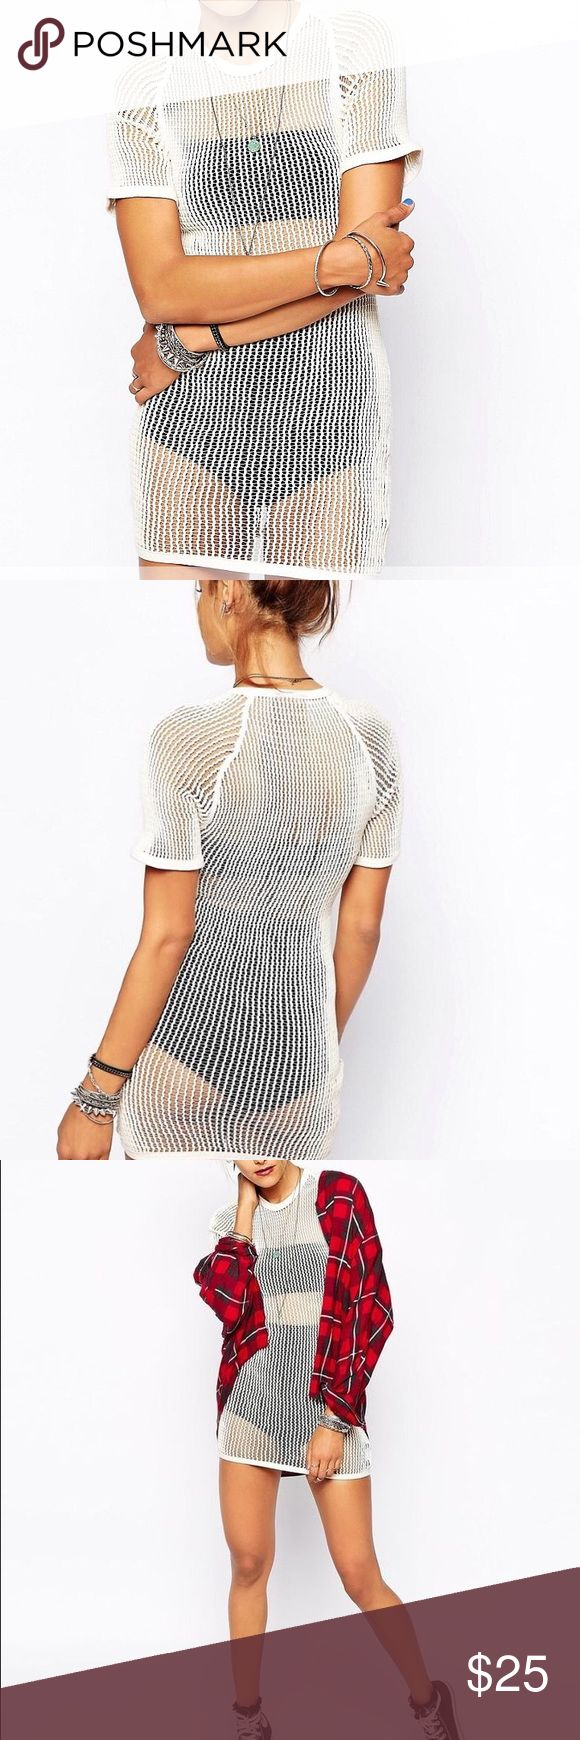 Vintage mesh longline tshirt Color is more of a light tan not white Asos Tops